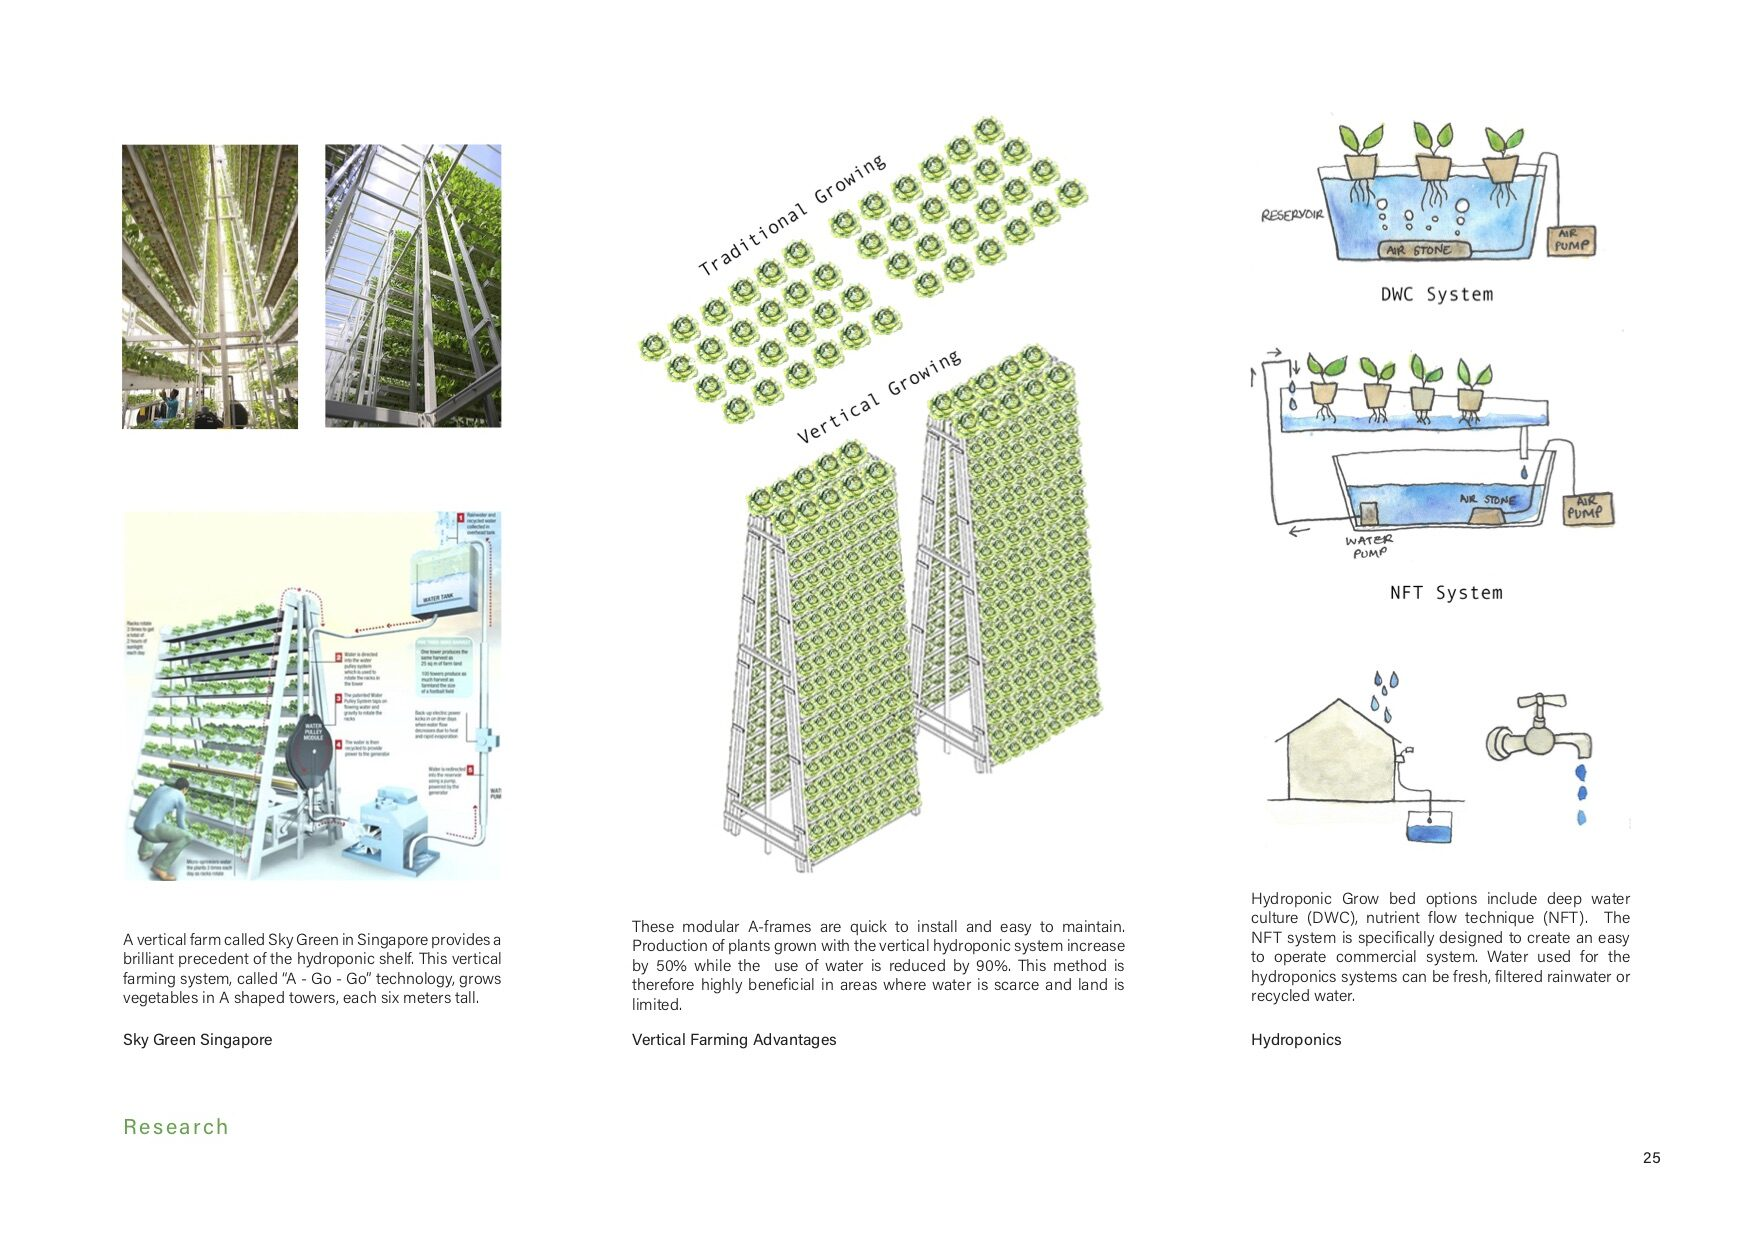 A research portfolio page illustrating the vertical framing used in the hydroponics farm